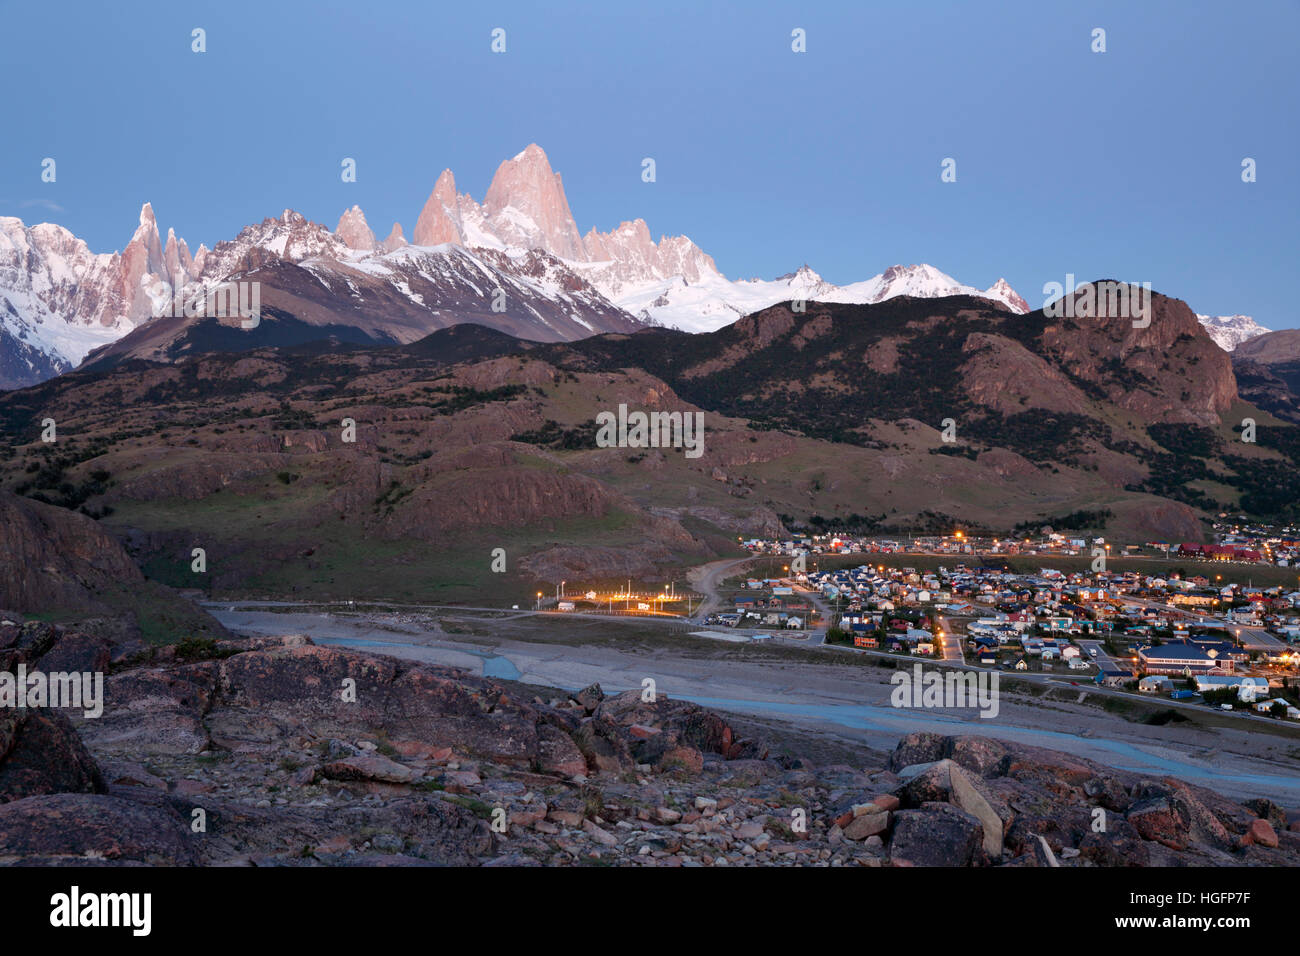 View over Mount Fitz Roy and Cerro Torre with town of El Chalten, El Chalten, Patagonia, Argentina, South America - Stock Image